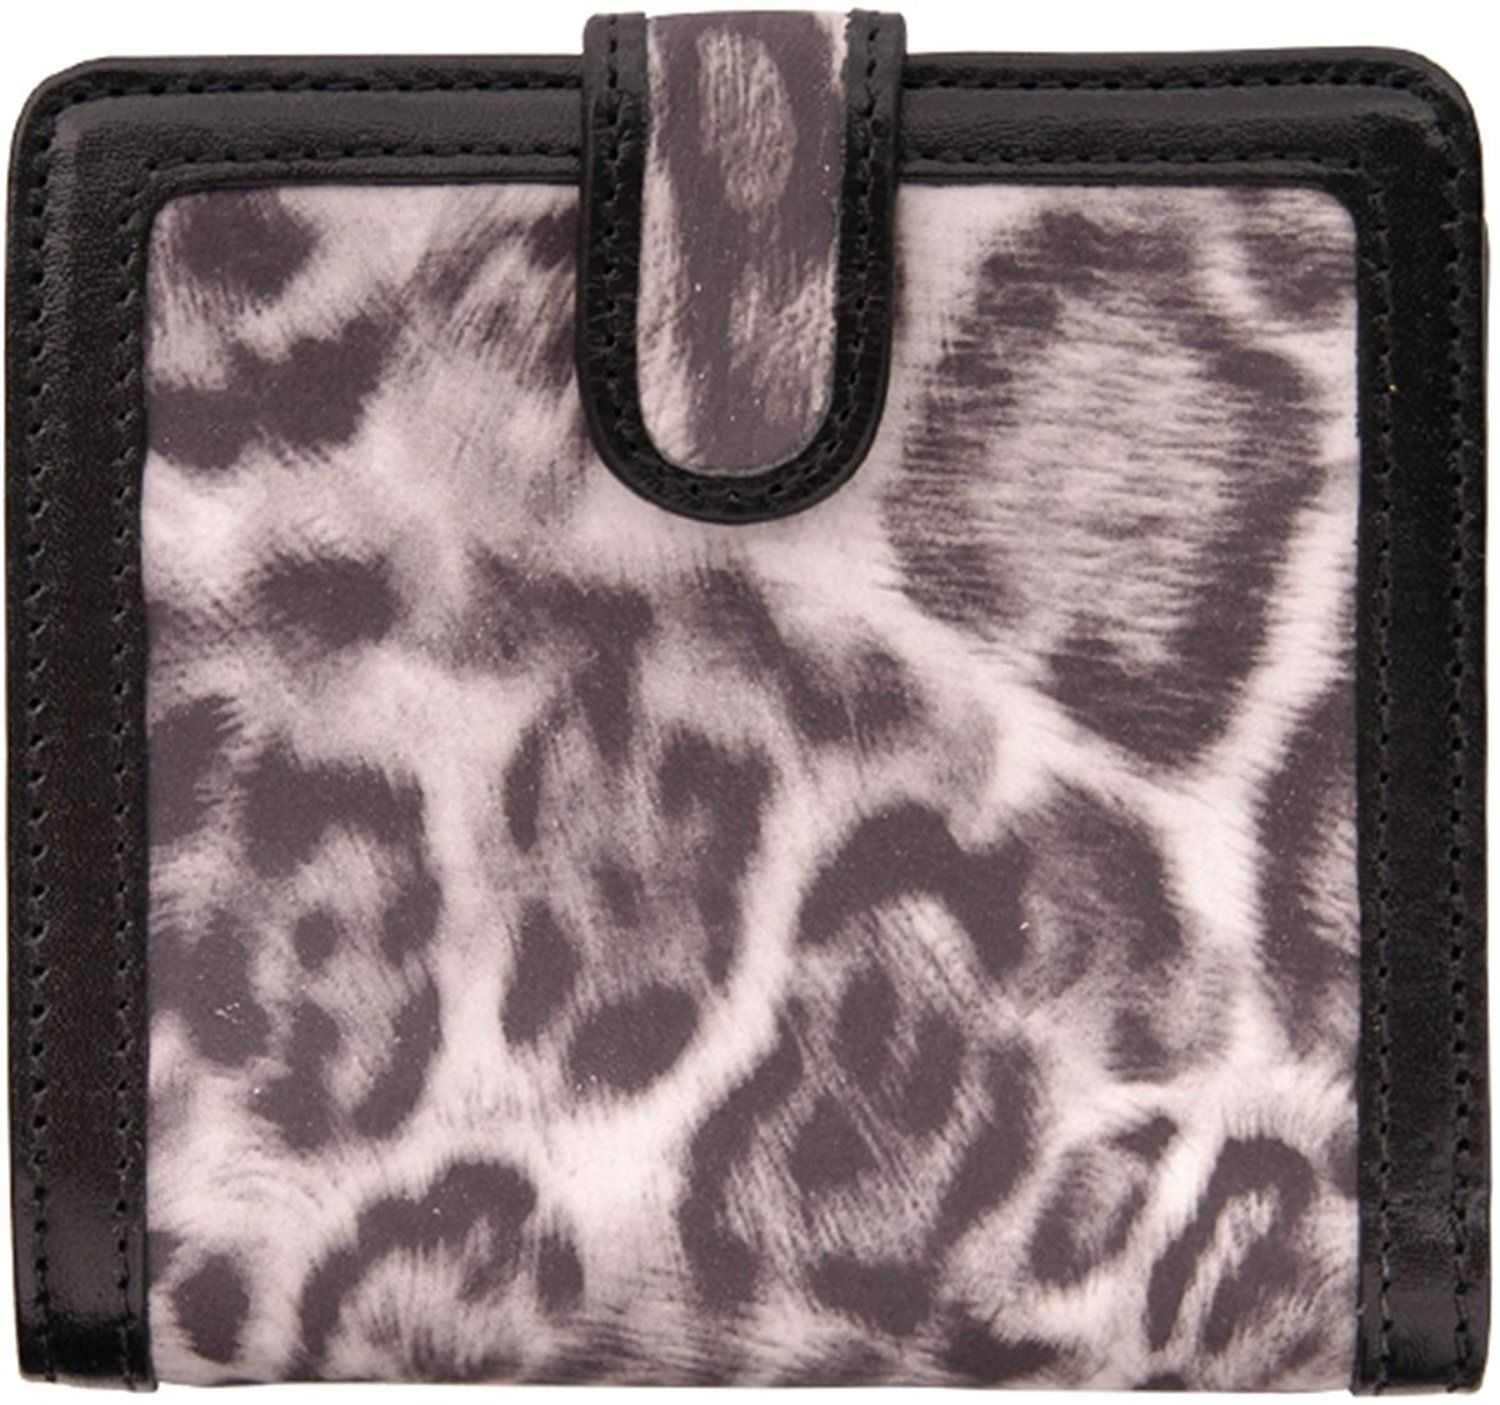 a42f09f3b2 Angel Ranch Black Puma Print Leather Womens Clutch Wallet White      Insider s special review you can t miss. Read more   Handbag Clutches